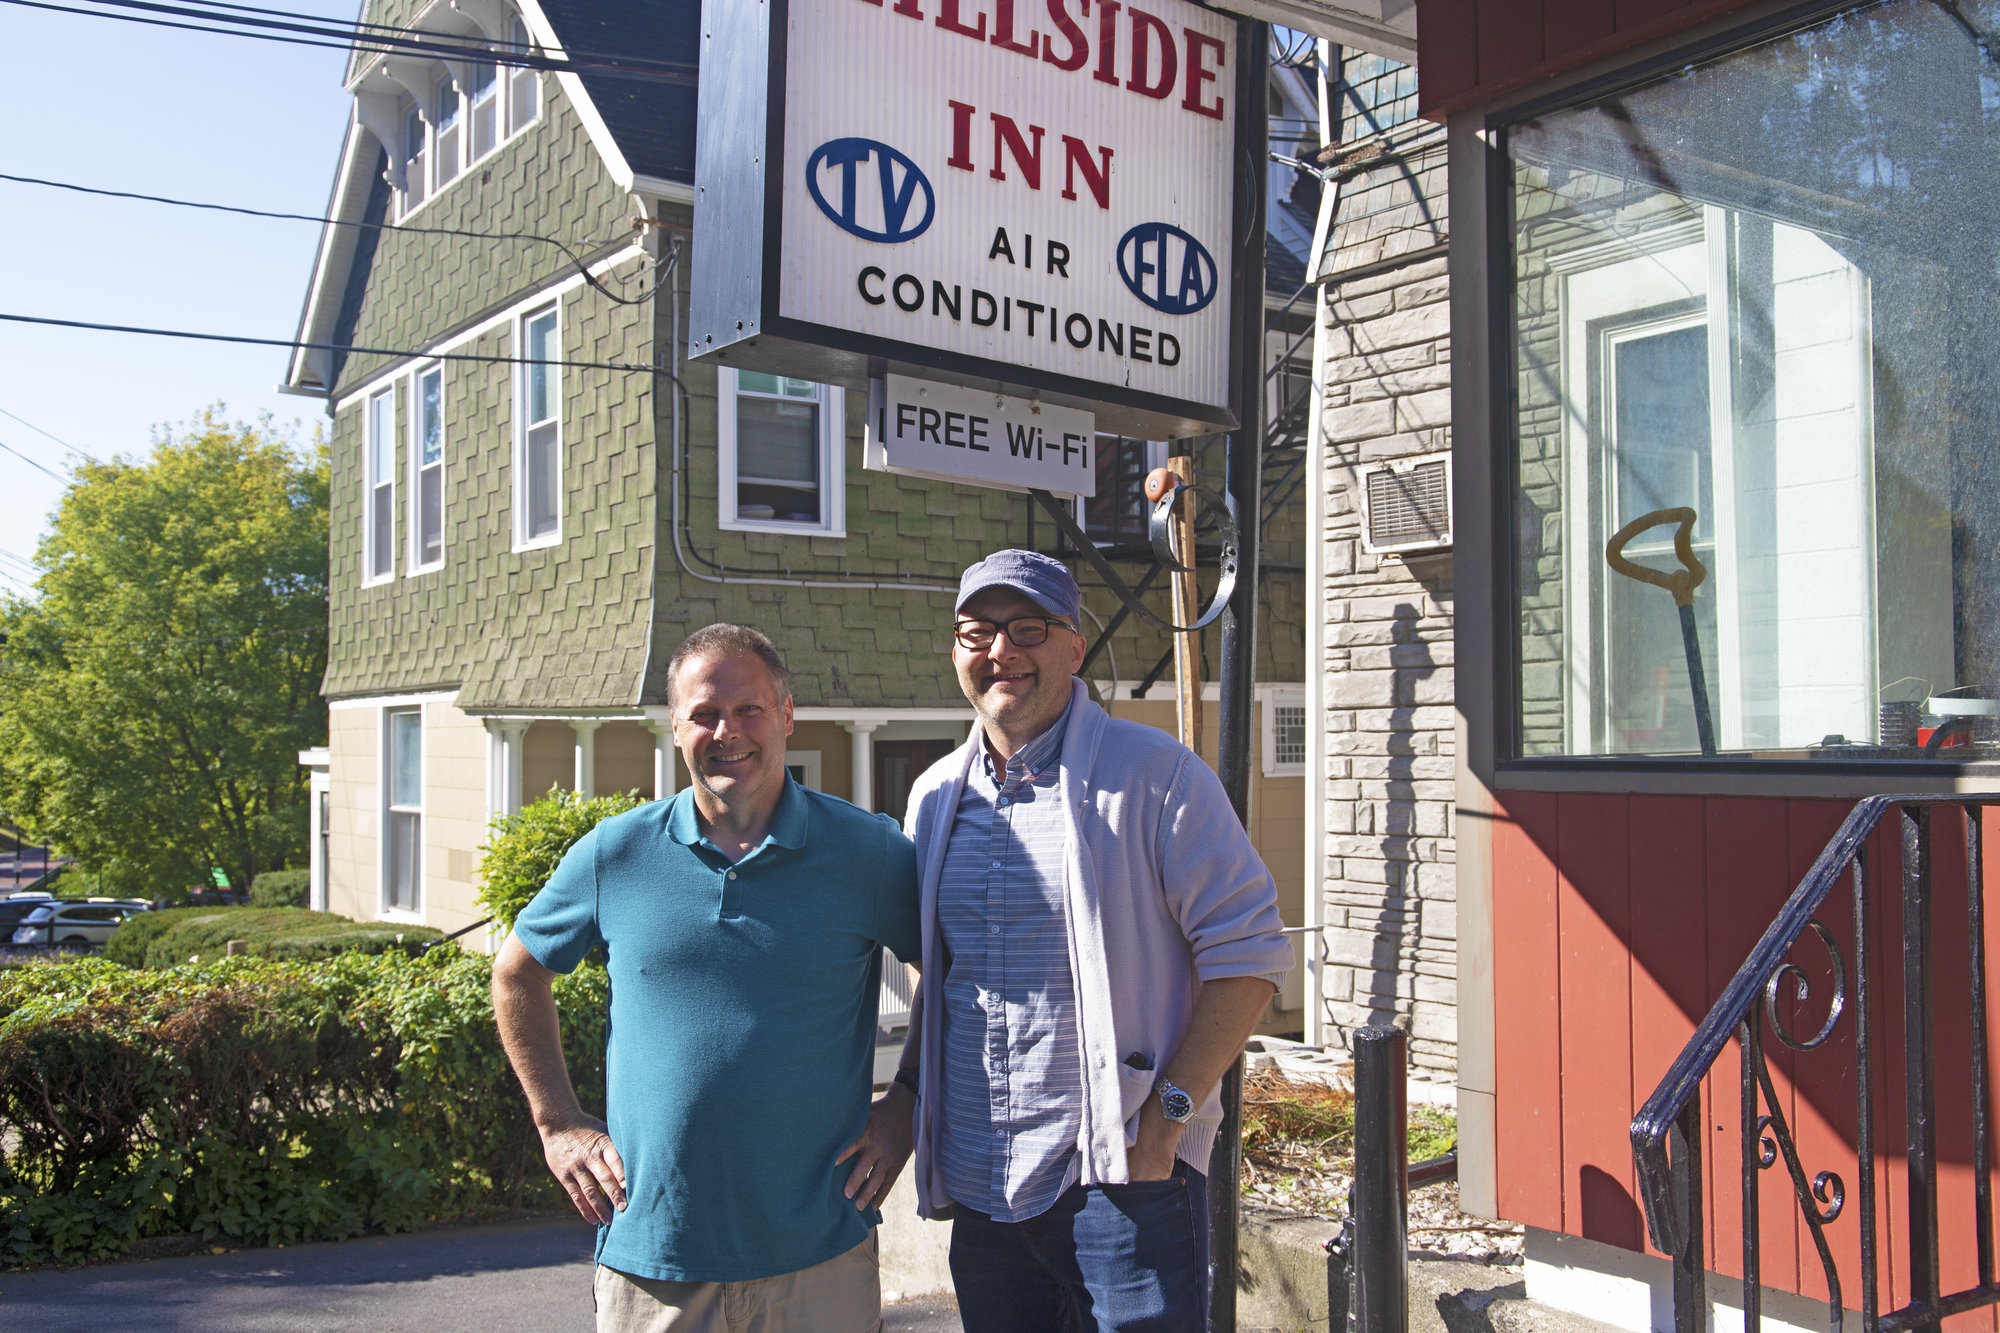 Gary Bush (left), owner of SPEC Consulting in Groton, with Robert Poprawski (right), owner of the upcoming Dorm Hotel at the old Hillside Inn site on Stewart Avenue in Ithaca. The two are working to bring a luxury-budget hotel to collegetown.